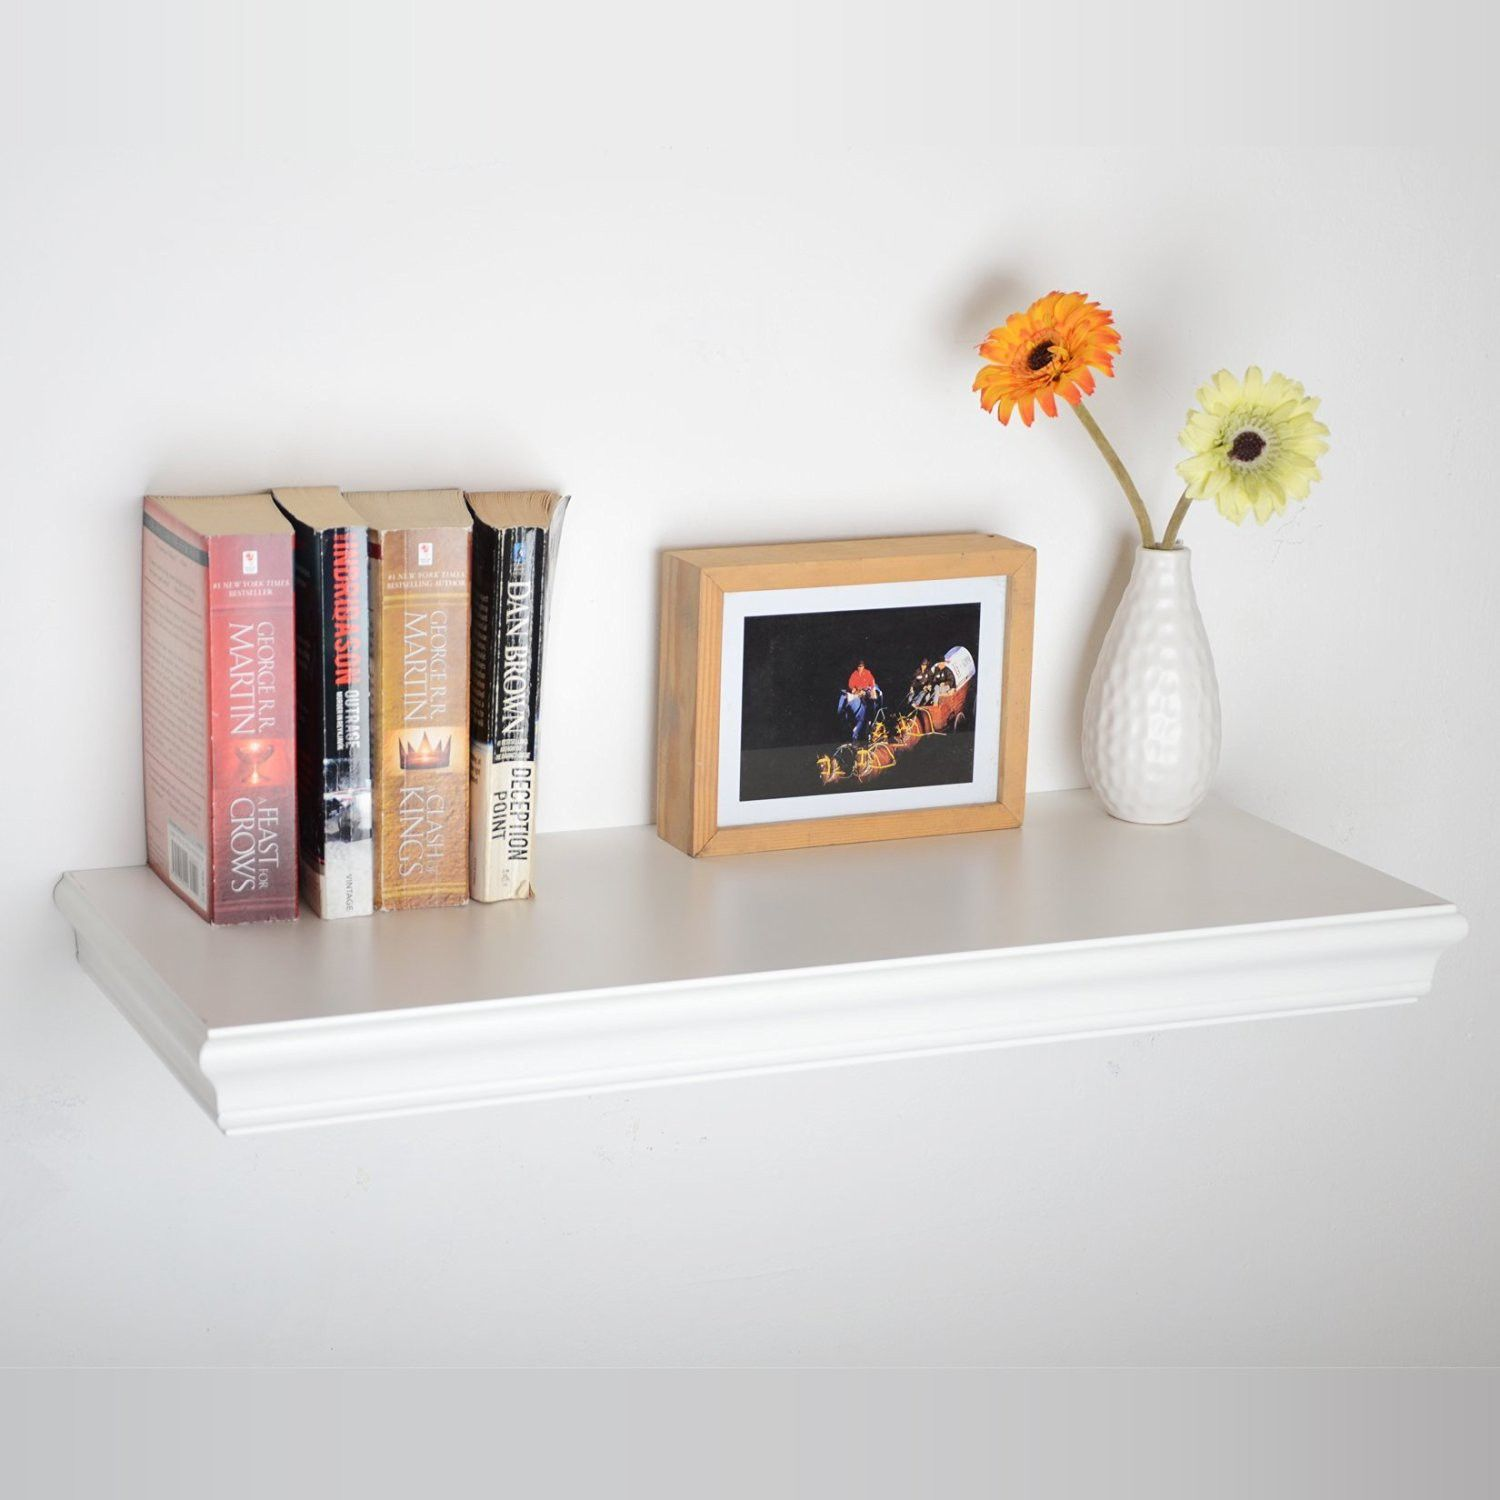 20 Inch Dover Wall Shelf White (White Color) For US$ 35.99 In Floating